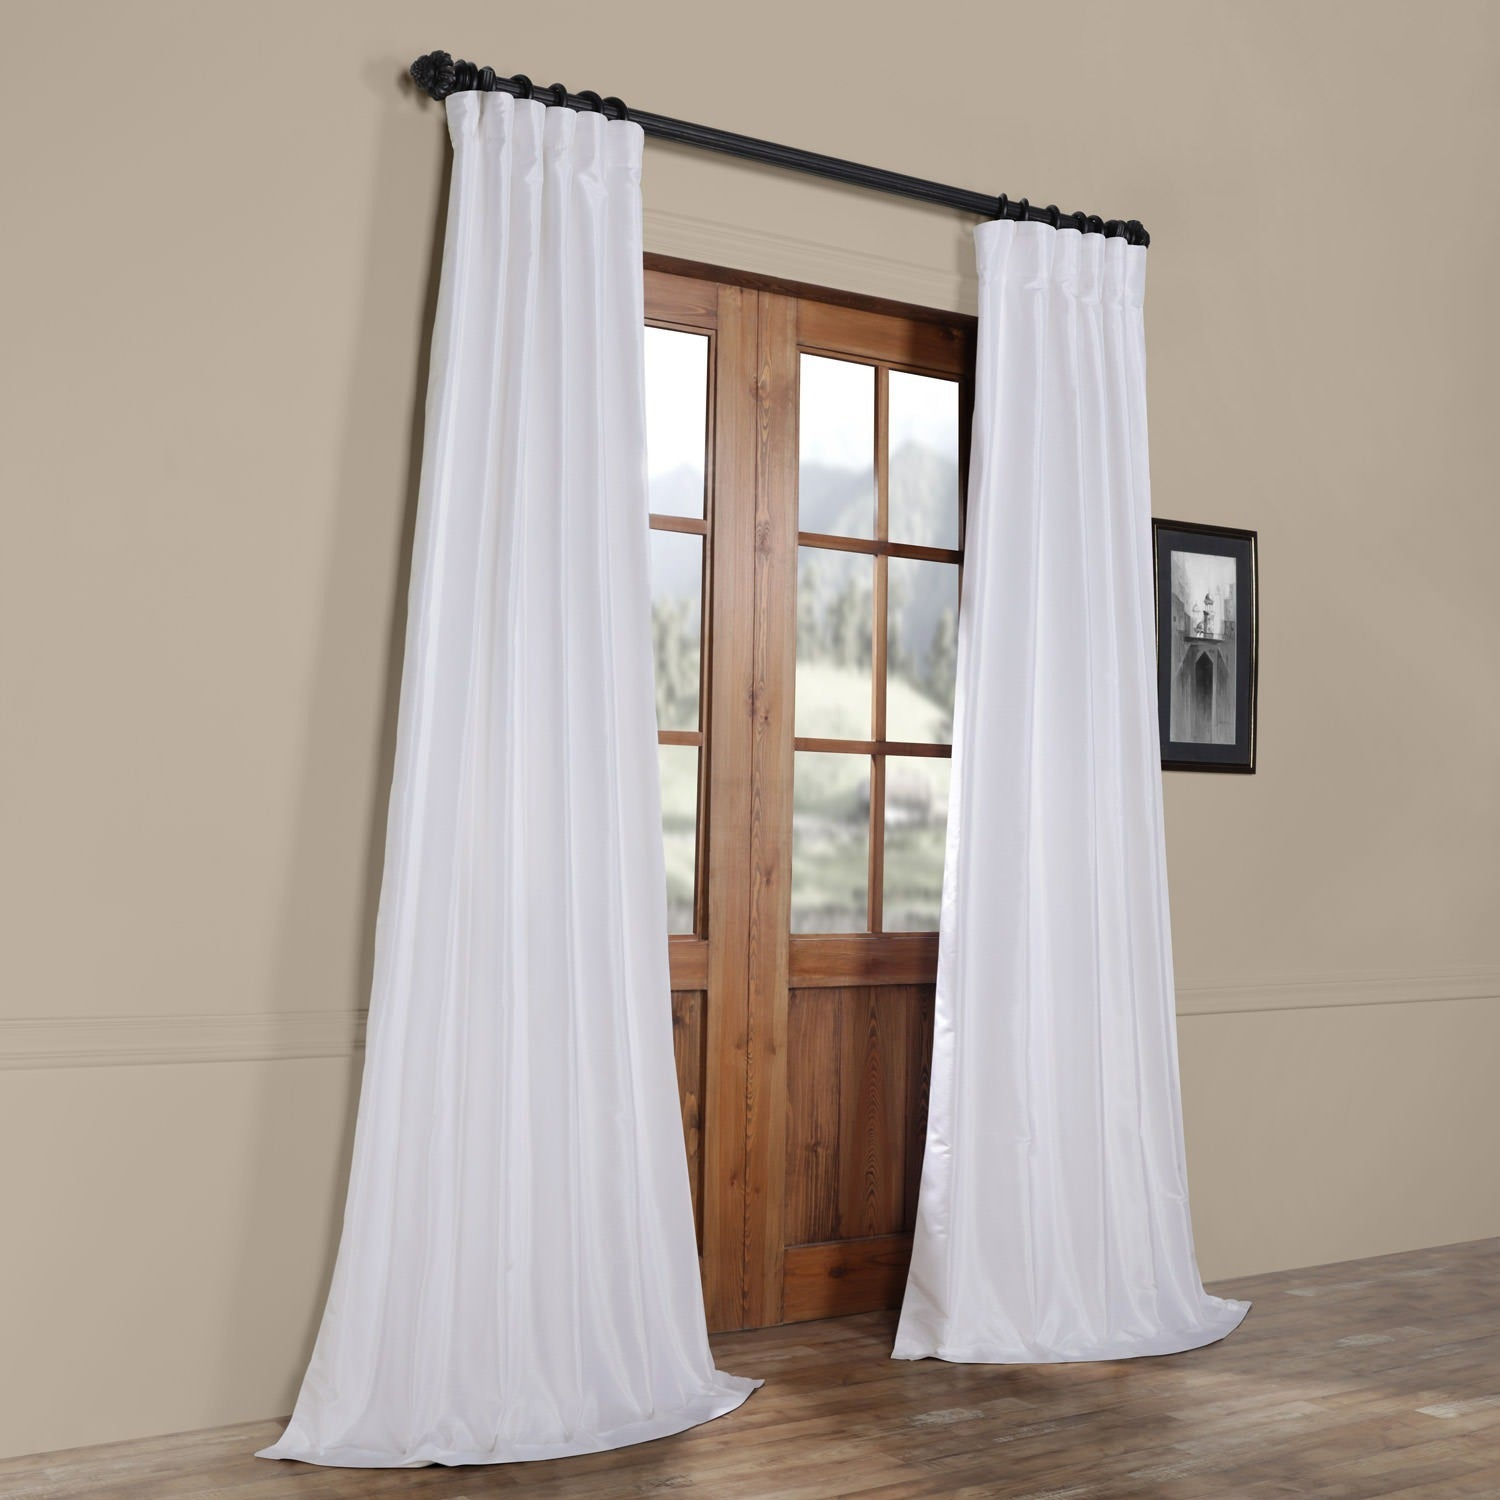 Ice White Vintage Faux Textured Dupioni Silk 108l Curtain Panel In Ice White Vintage Faux Textured Silk Curtain Panels (View 3 of 20)